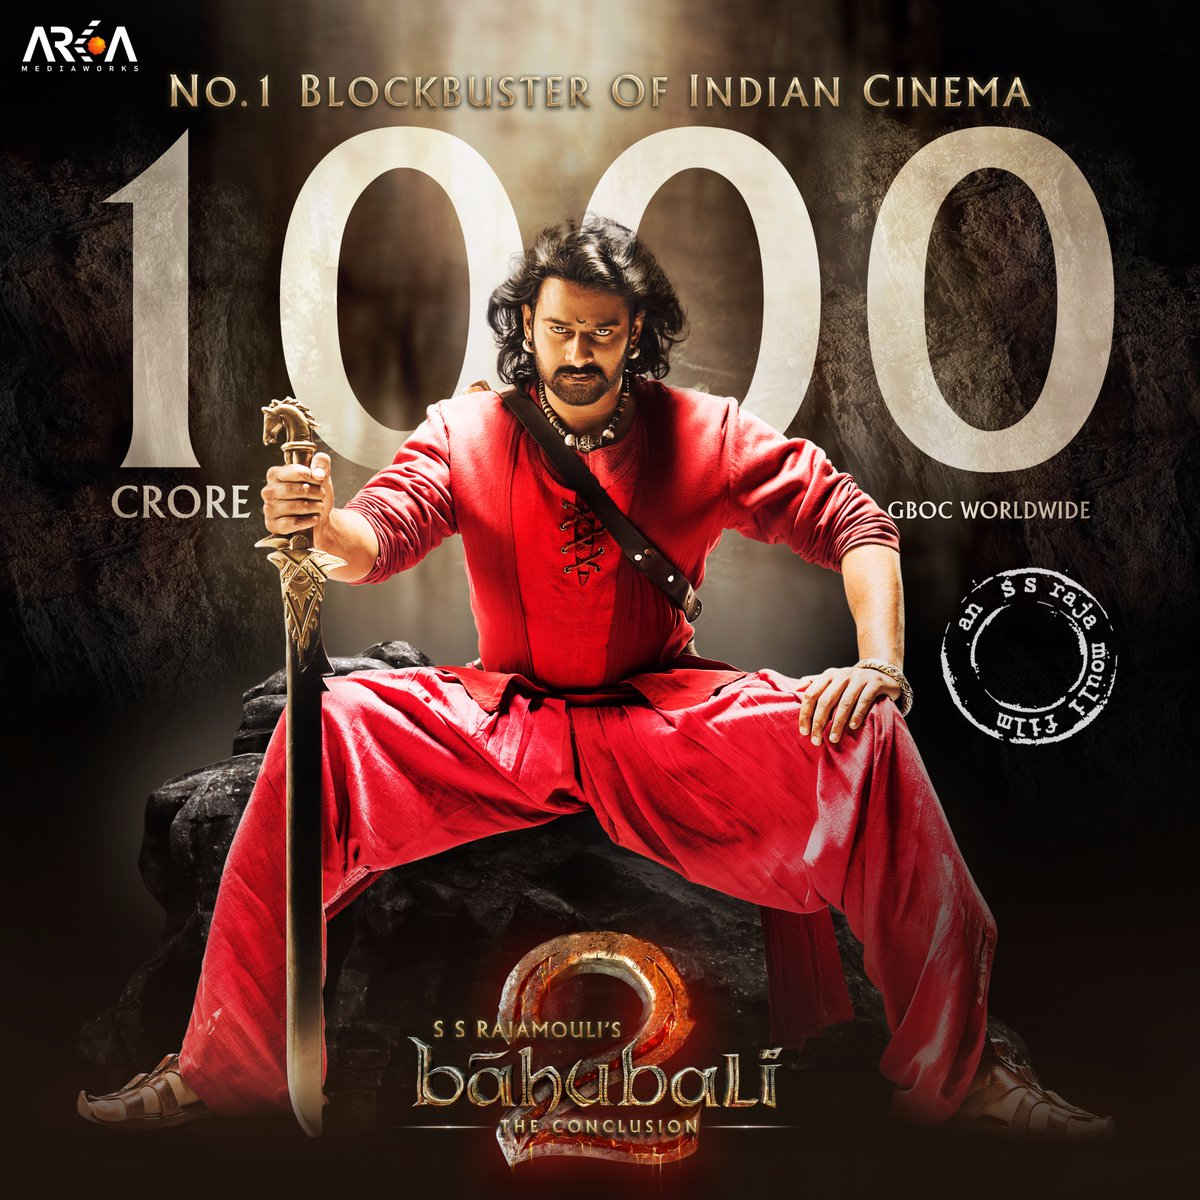 bahubali 2 becomes 1st indian film to cross 1000 crore